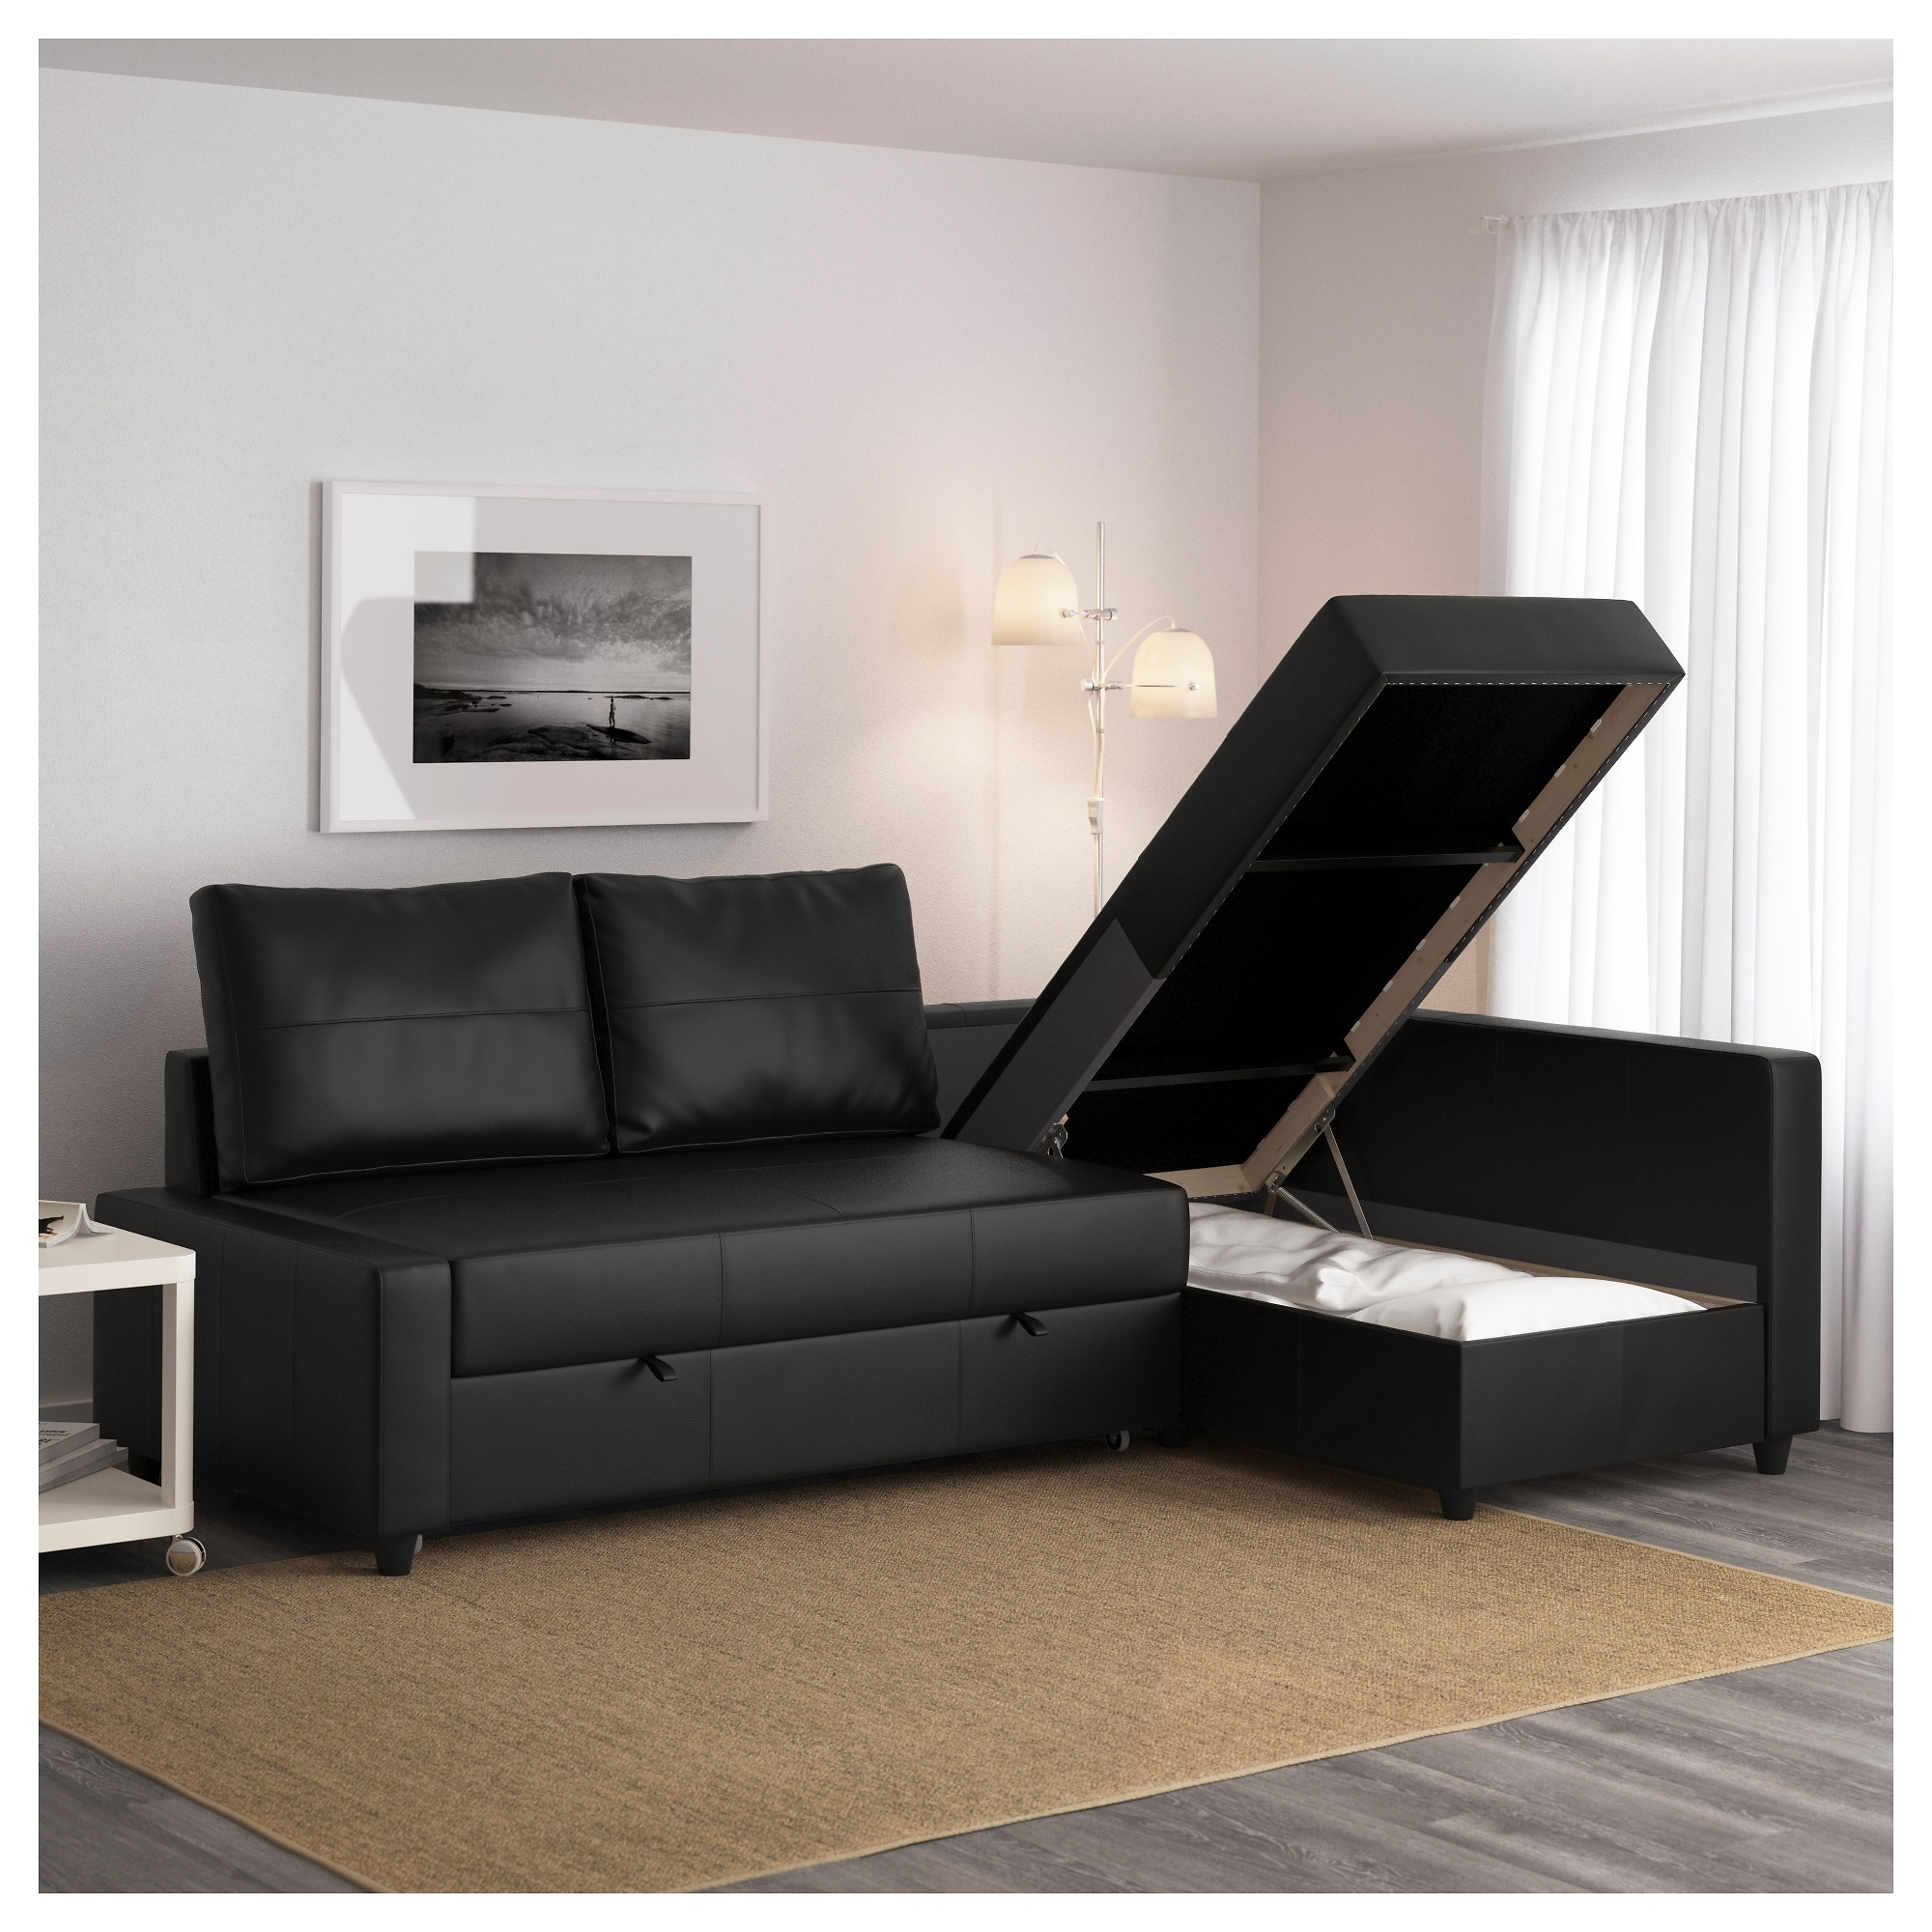 Best And Newest Friheten Sleeper Sectional,3 Seat W/storage – Skiftebo Dark Gray Within Ikea Chaise Couches (View 3 of 15)